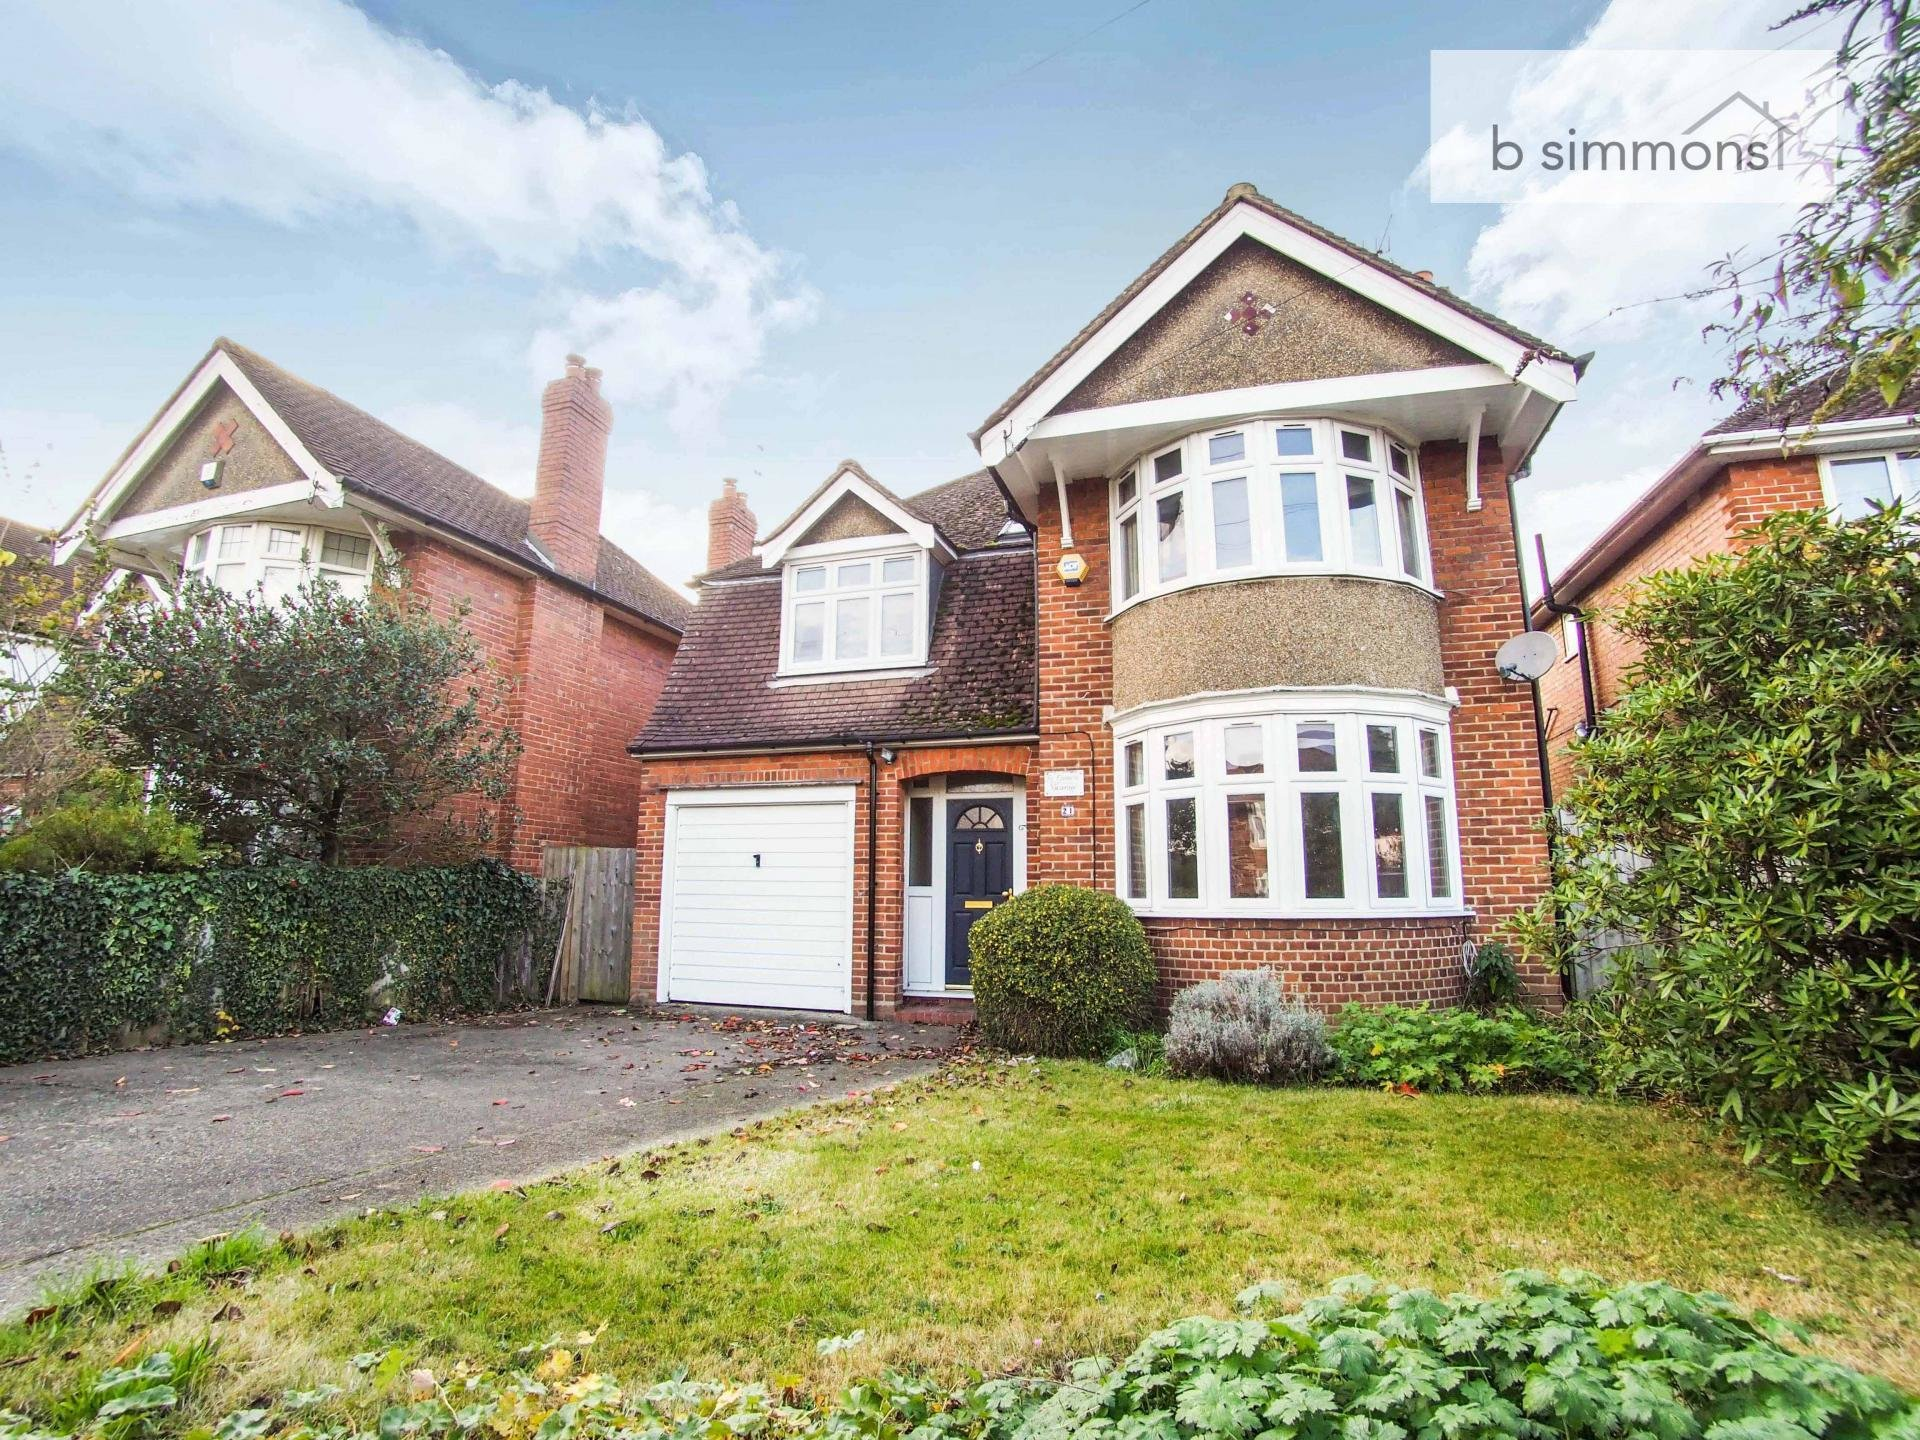 Best 4 Bedroom House For Sale In Slough With Pictures